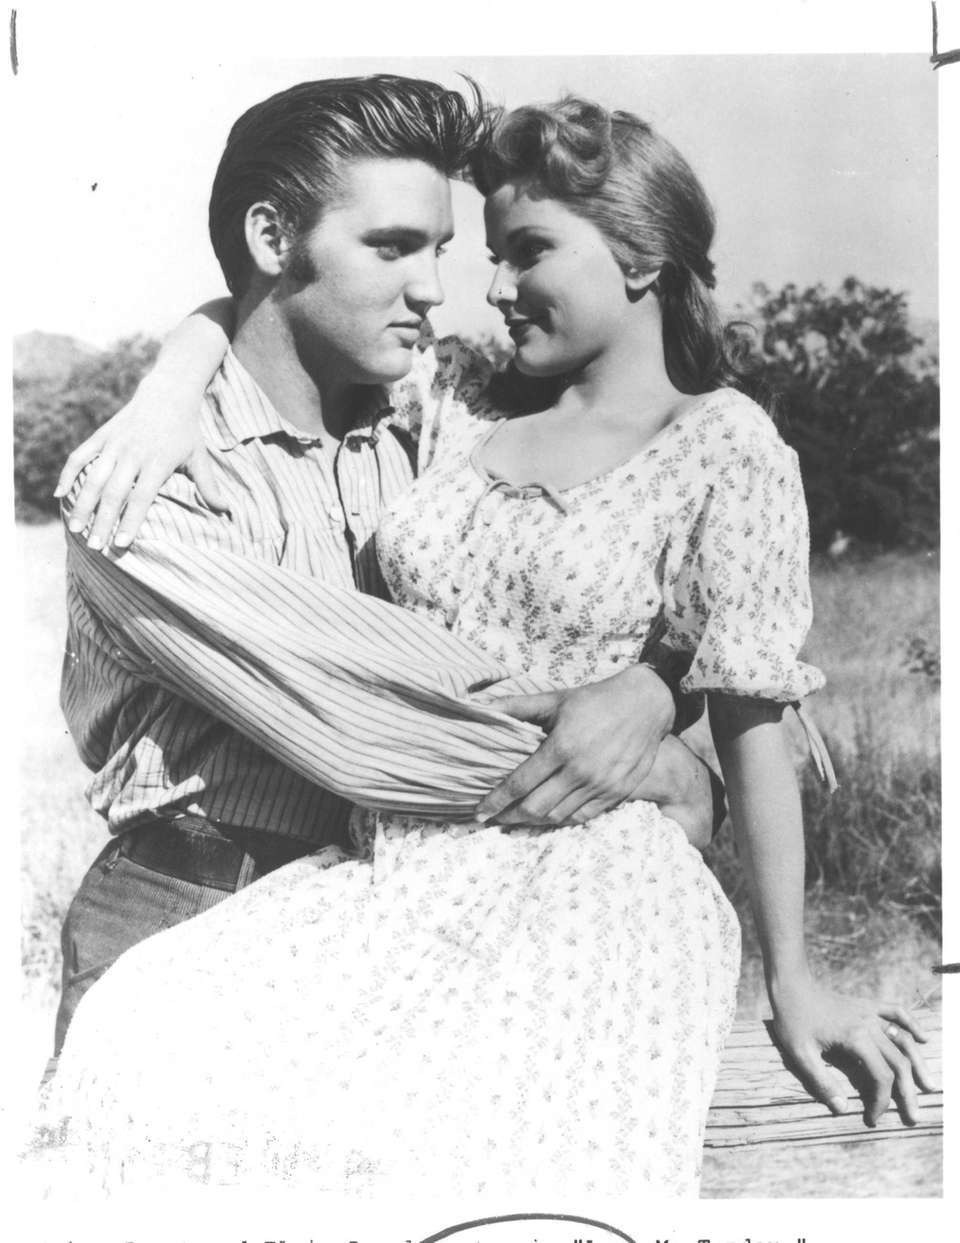 Elvis Presley and actress Debra Paget, his first